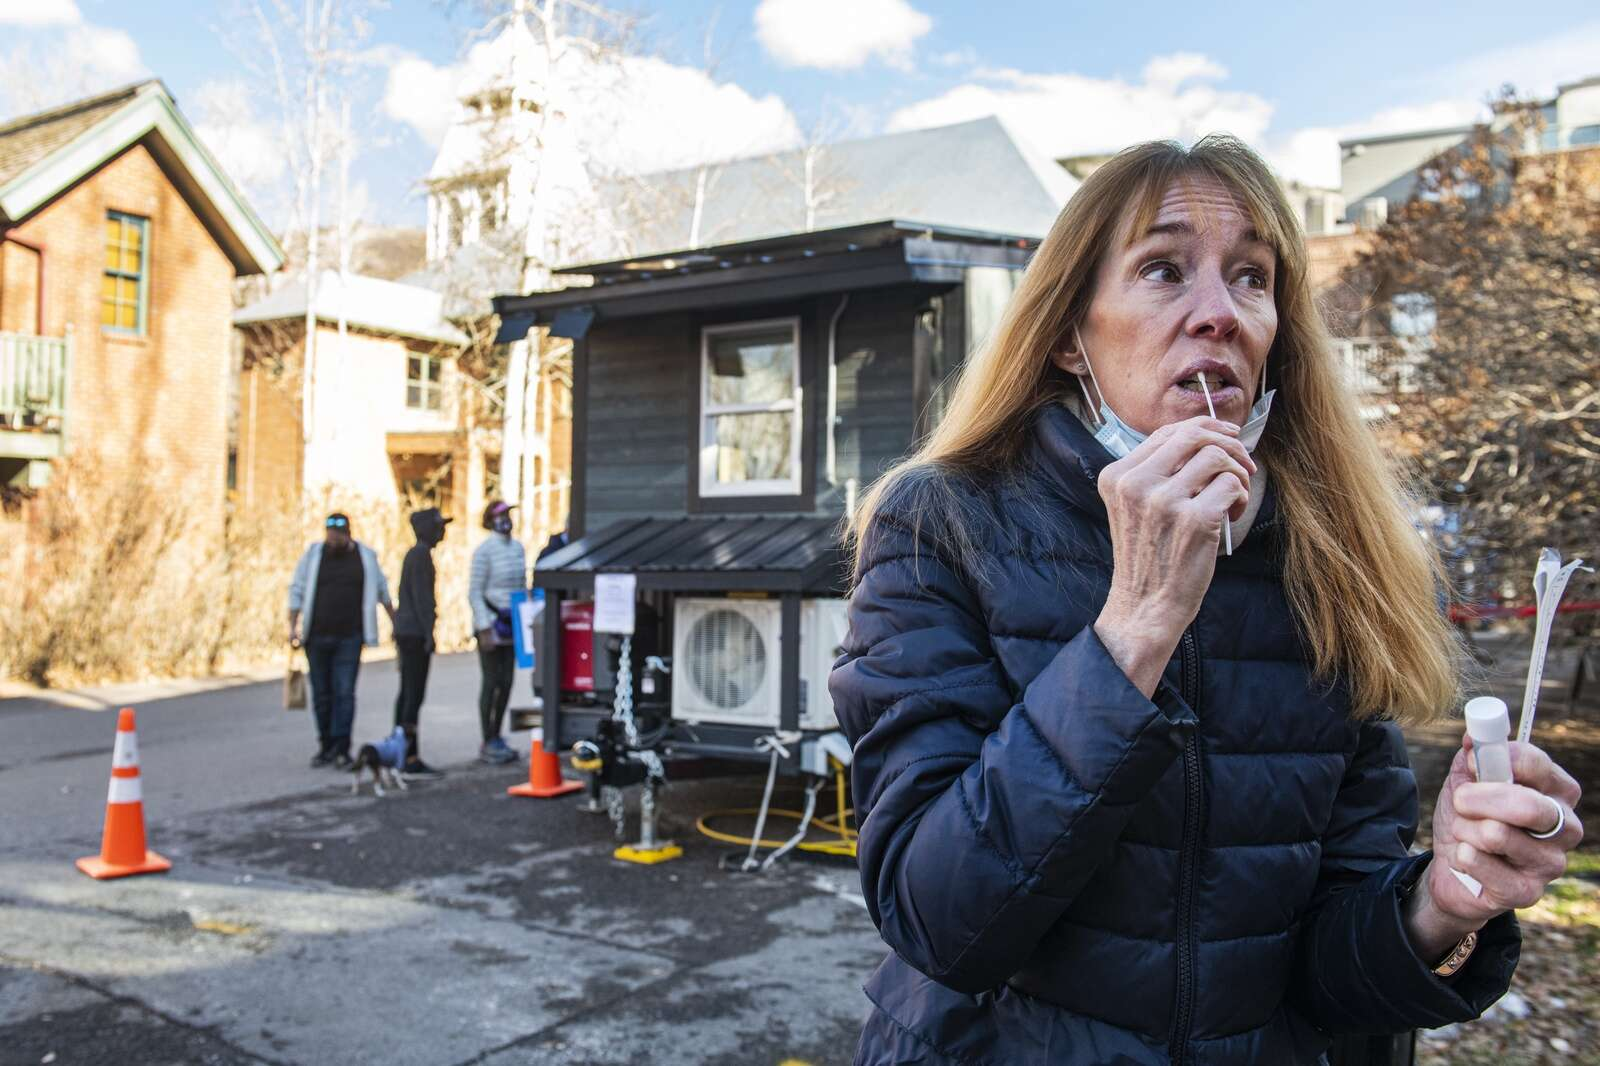 Colleen Delia self-administers a free COVID-19 swab test behind City Hall in Aspen on Monday, Nov. 23, 2020. The tests are free and available five days a week to anyone wanting to be tested. On December 1, they plan to open for testing seven days a week. Delia took the test before flying home to see her father for the holiday. She has no symptoms, but wanted to take precautions before visiting family. (Kelsey Brunner/The Aspen Times)